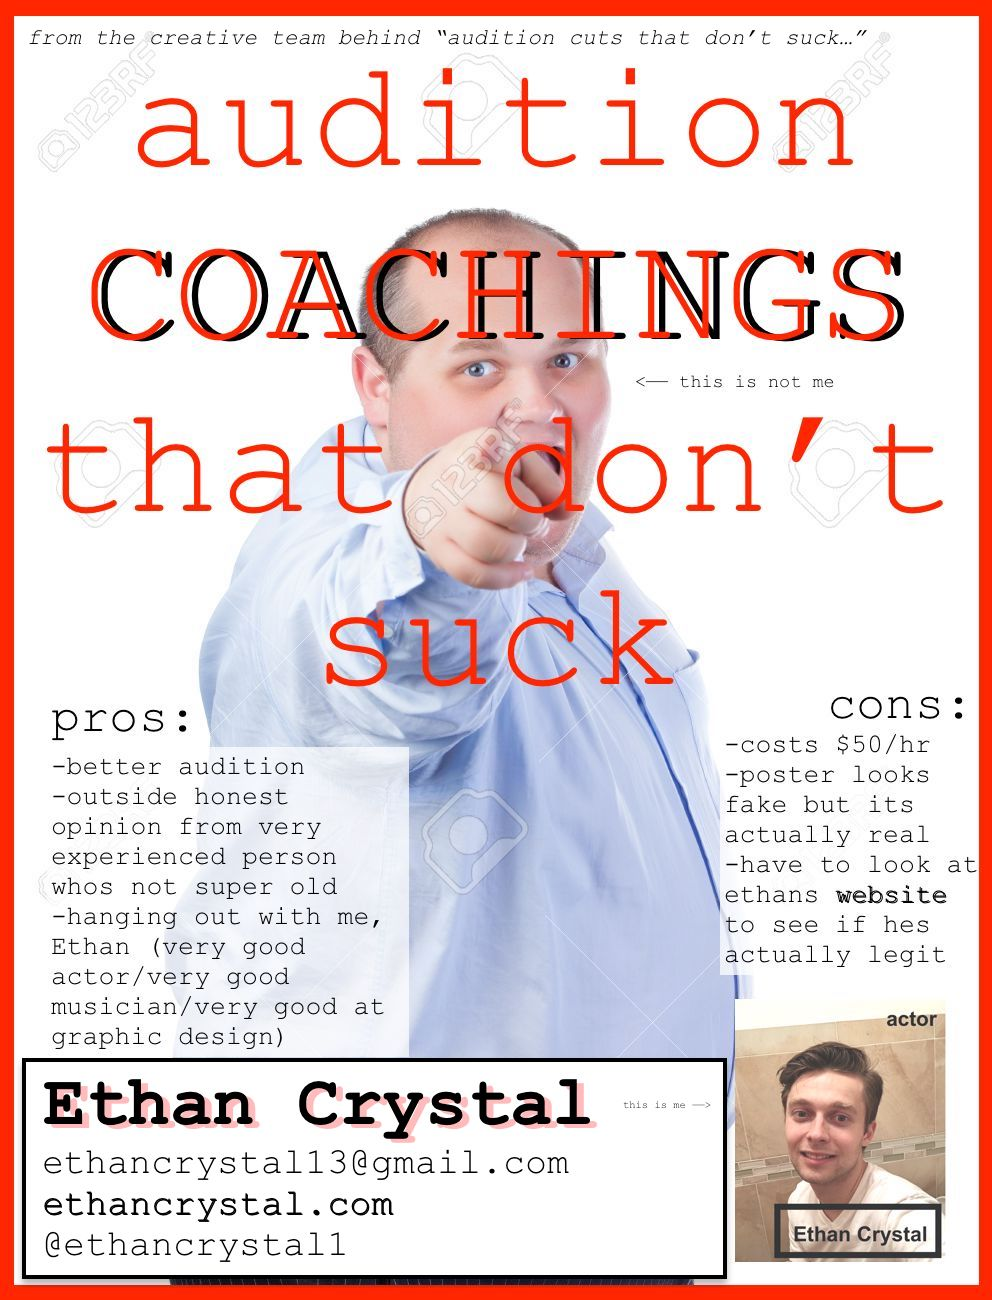 auditionCOACHINGSposter.jpg